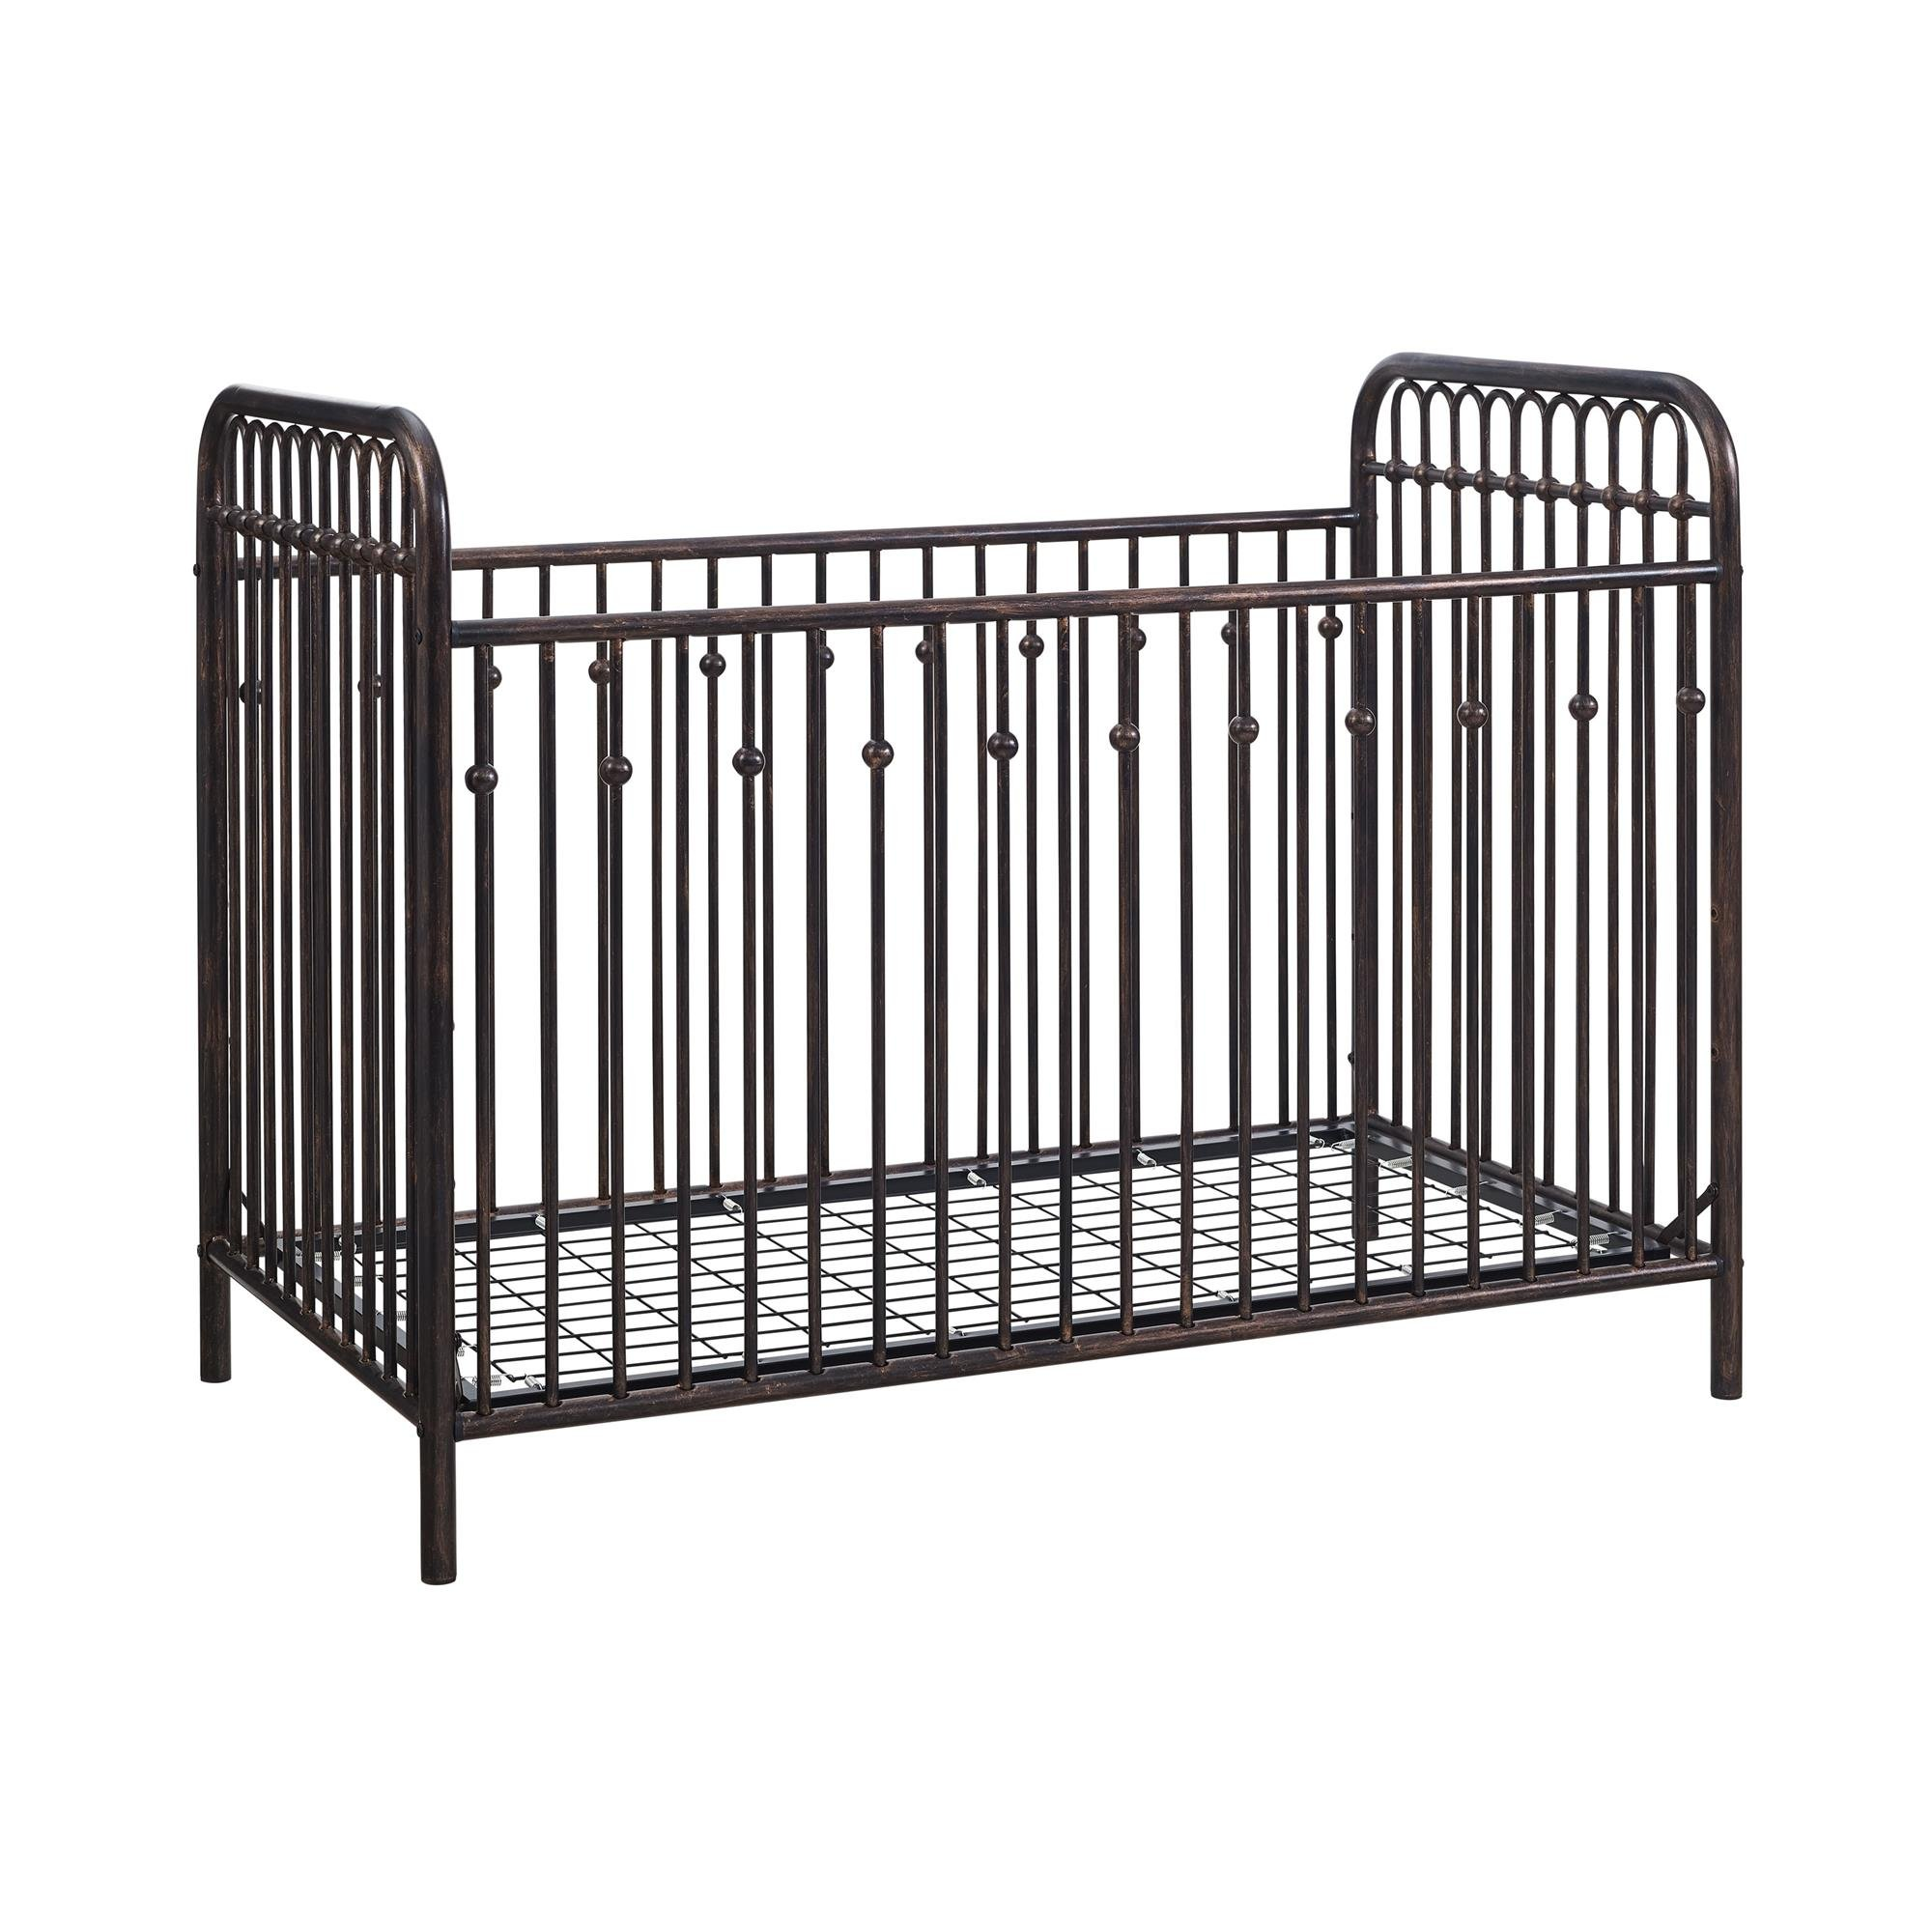 Little Seeds Monarch Hill Ivy Metal Crib, Bronze